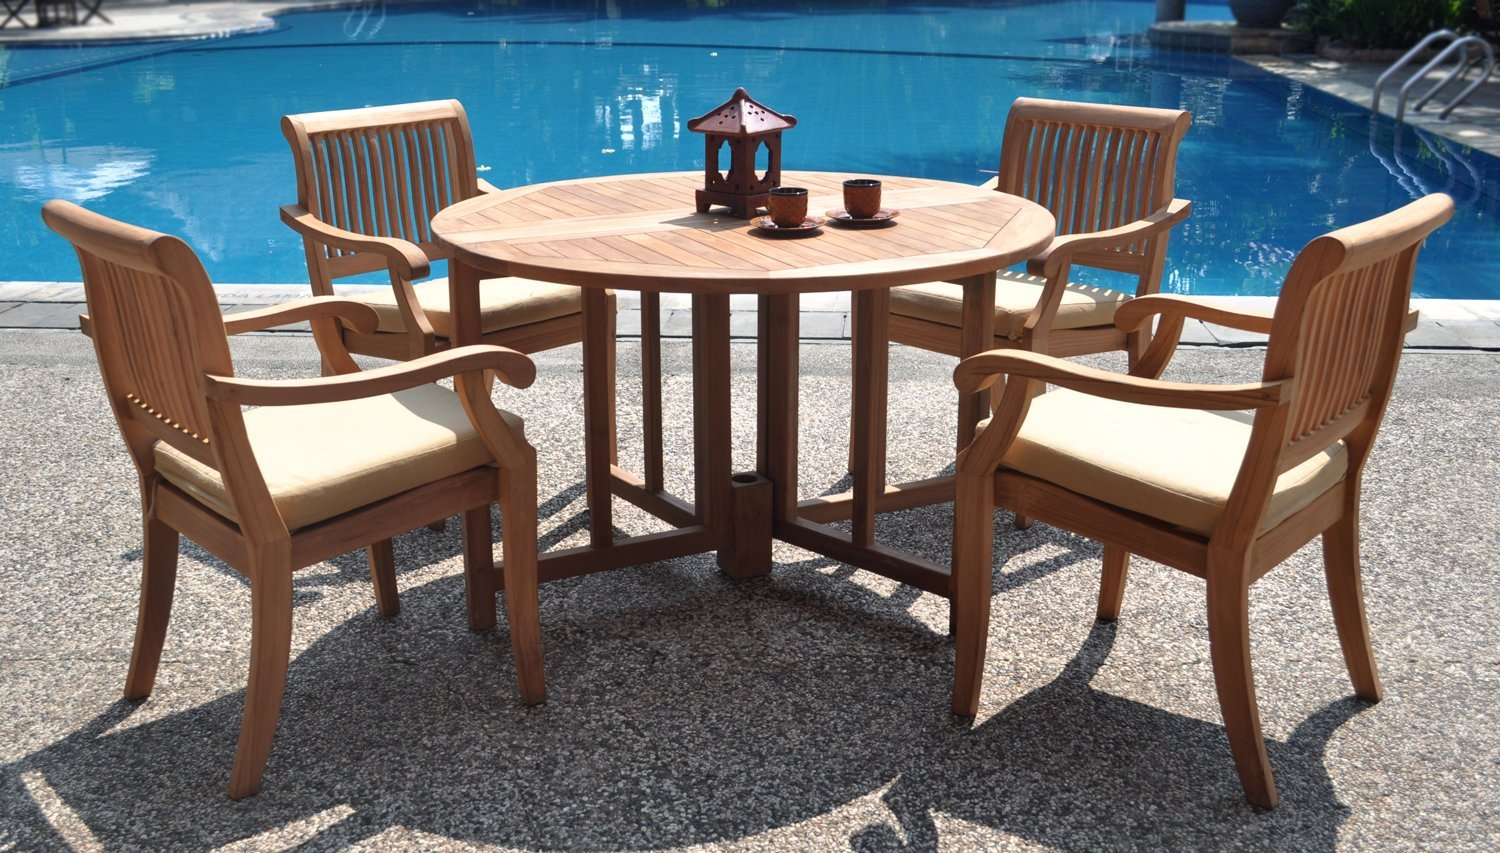 Outdoor Patio Furniture Dining Table Should You Treat Teak Patio Furniture With Teak Oil Teak Patio